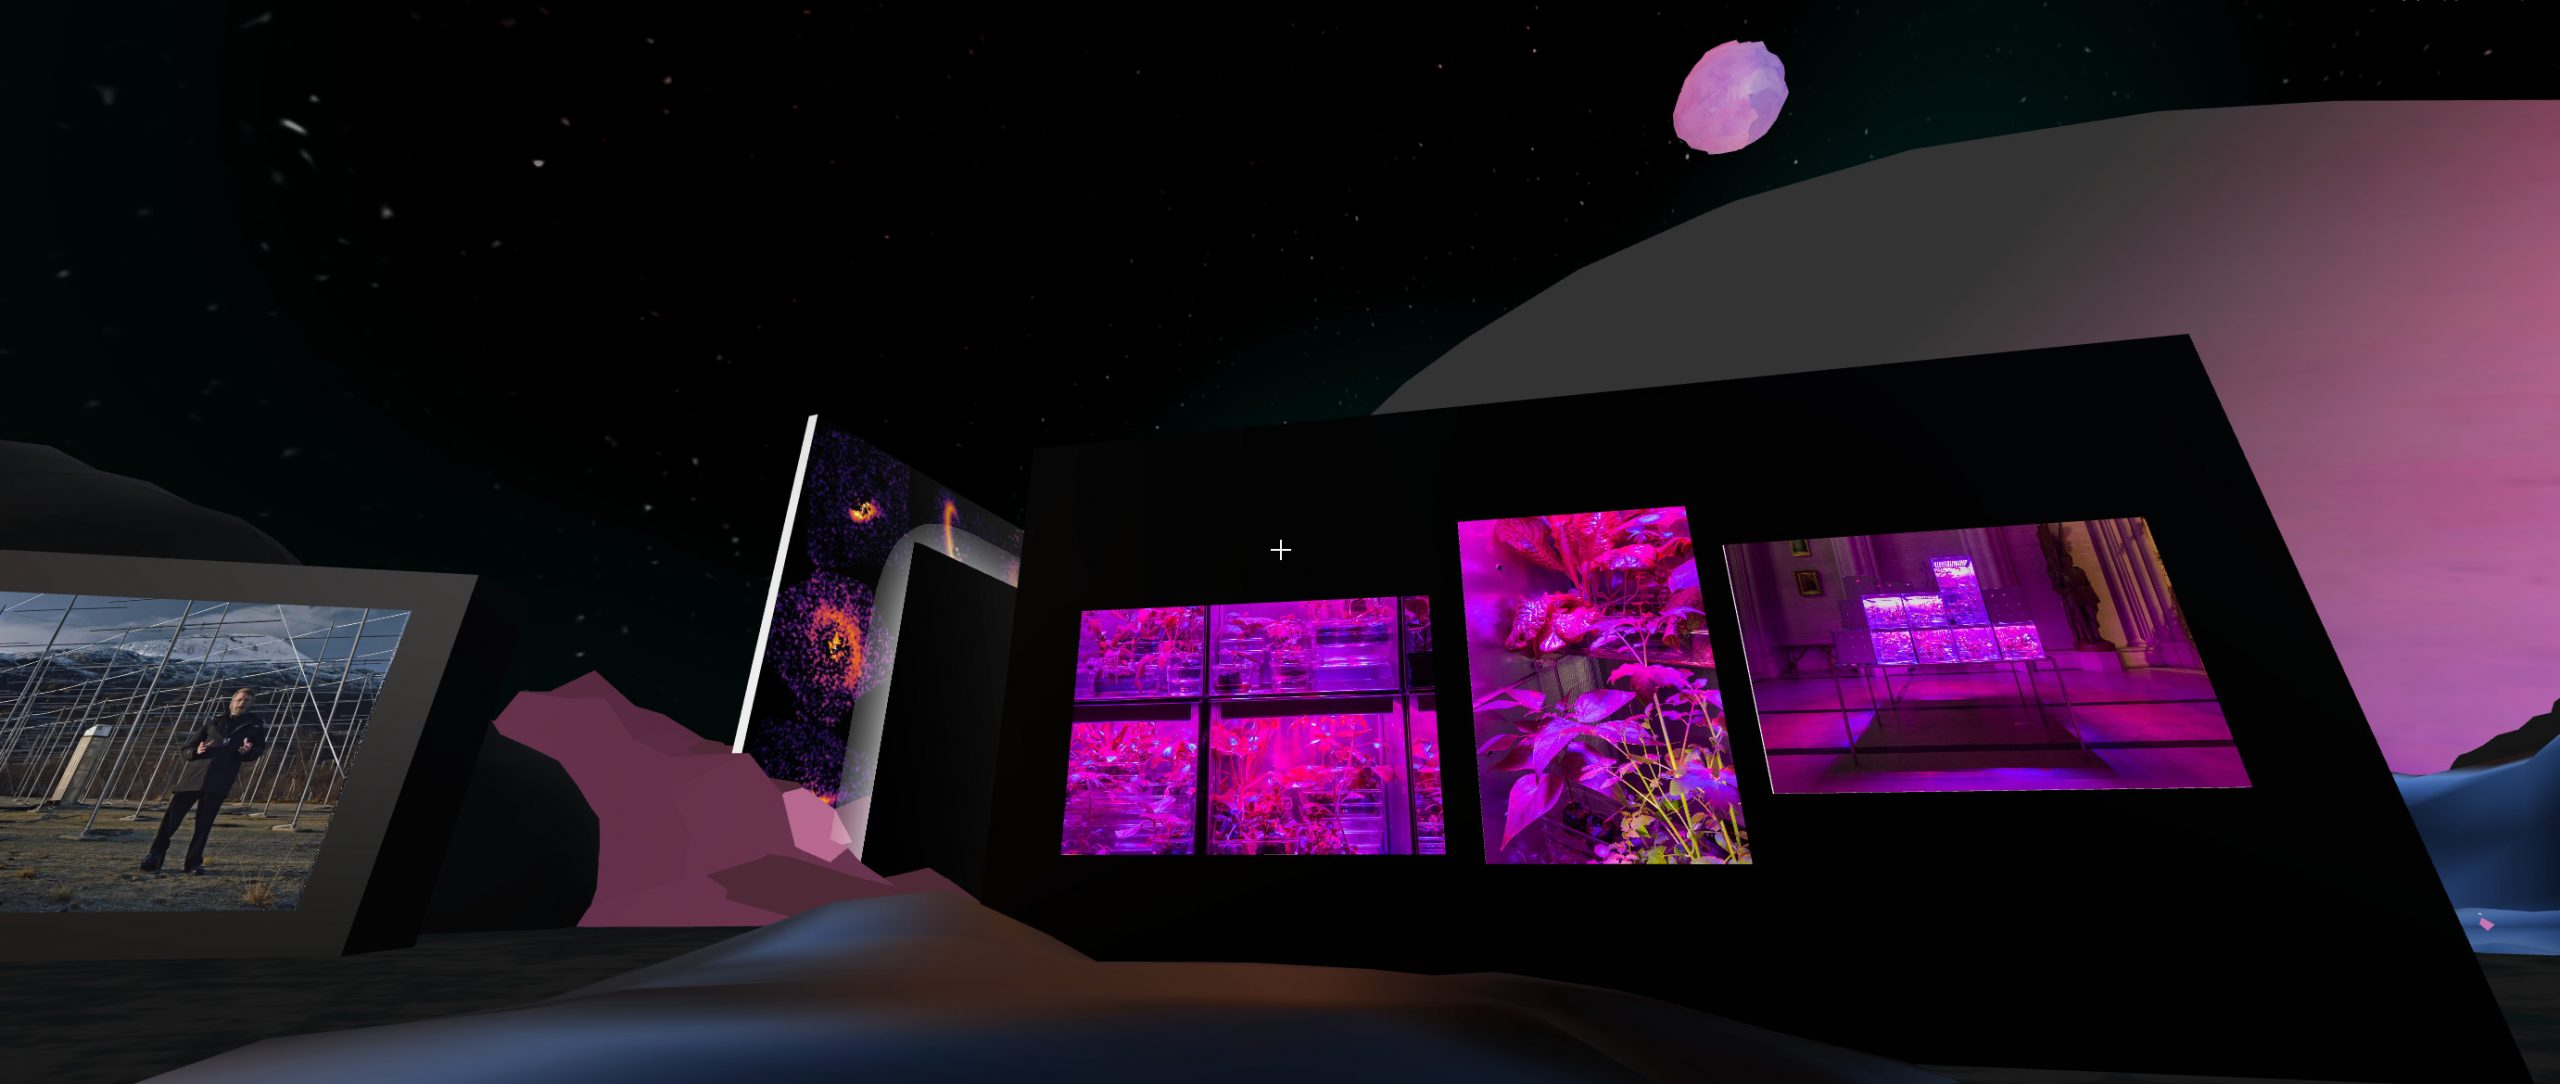 A black wall displaying a series of images, which shows stacked rows of glowing pink cubes and close-ups of pink and purple leaves.